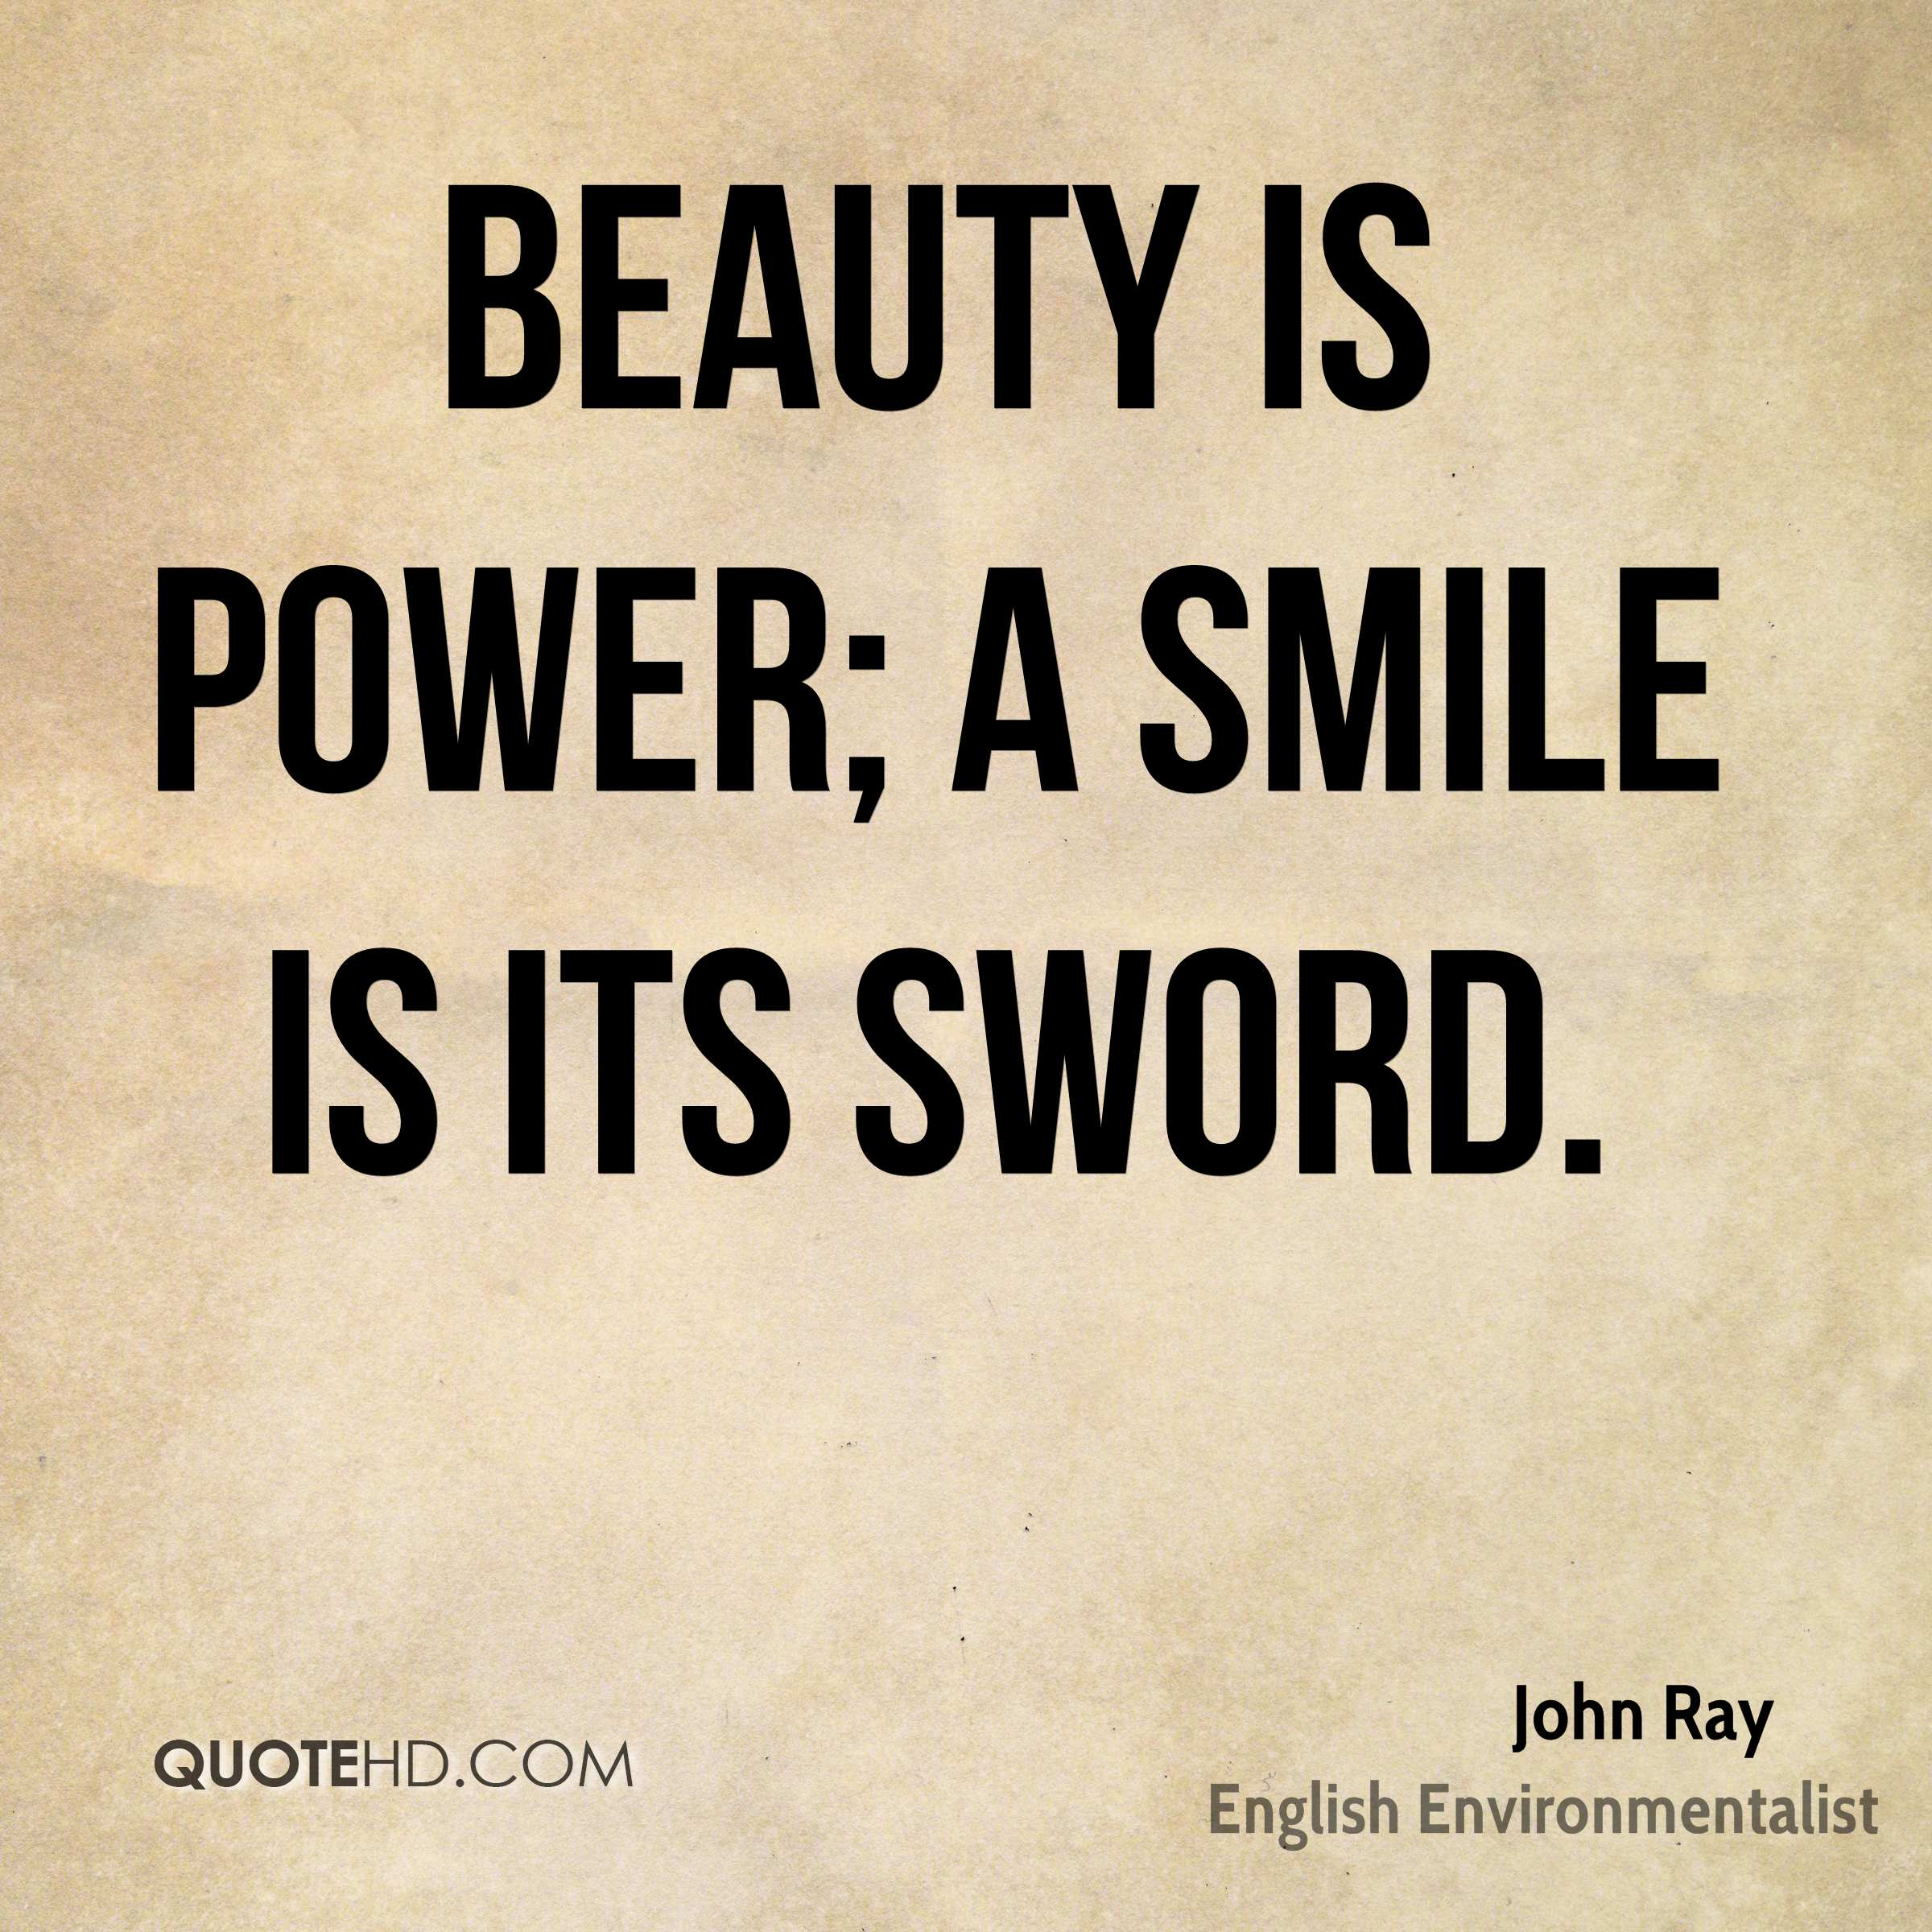 Quotes On Smile John Ray Power Quotes  Quotehd